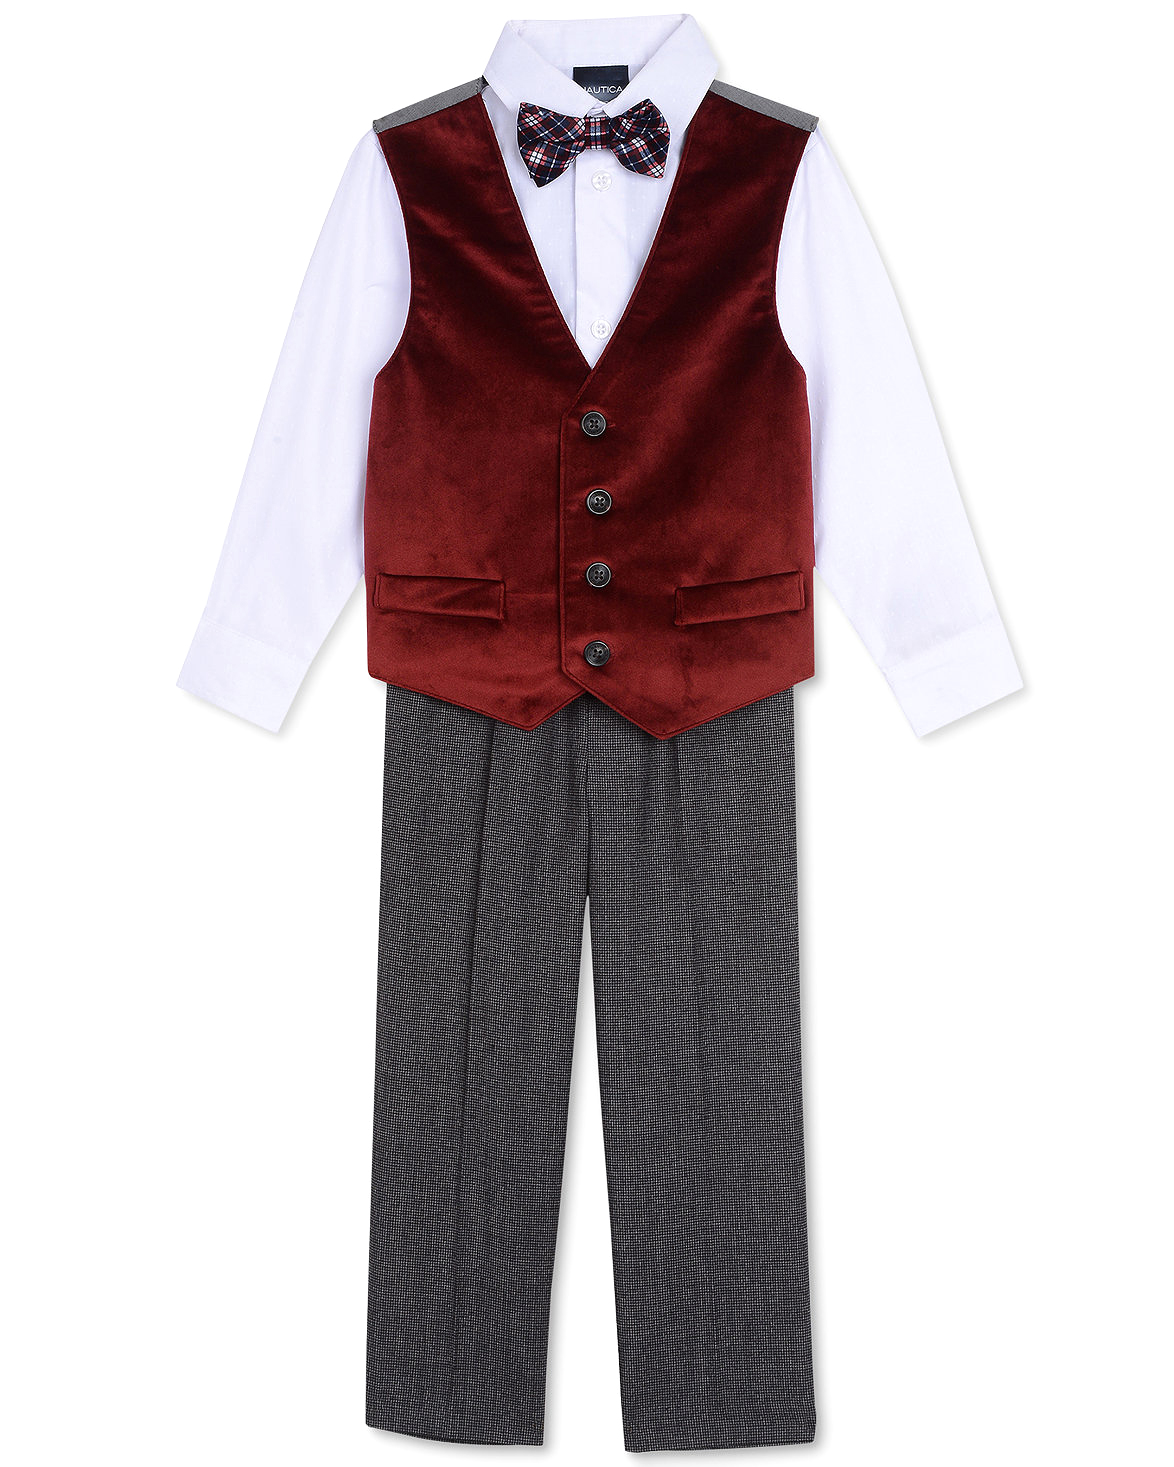 ring bearer outfit red vest